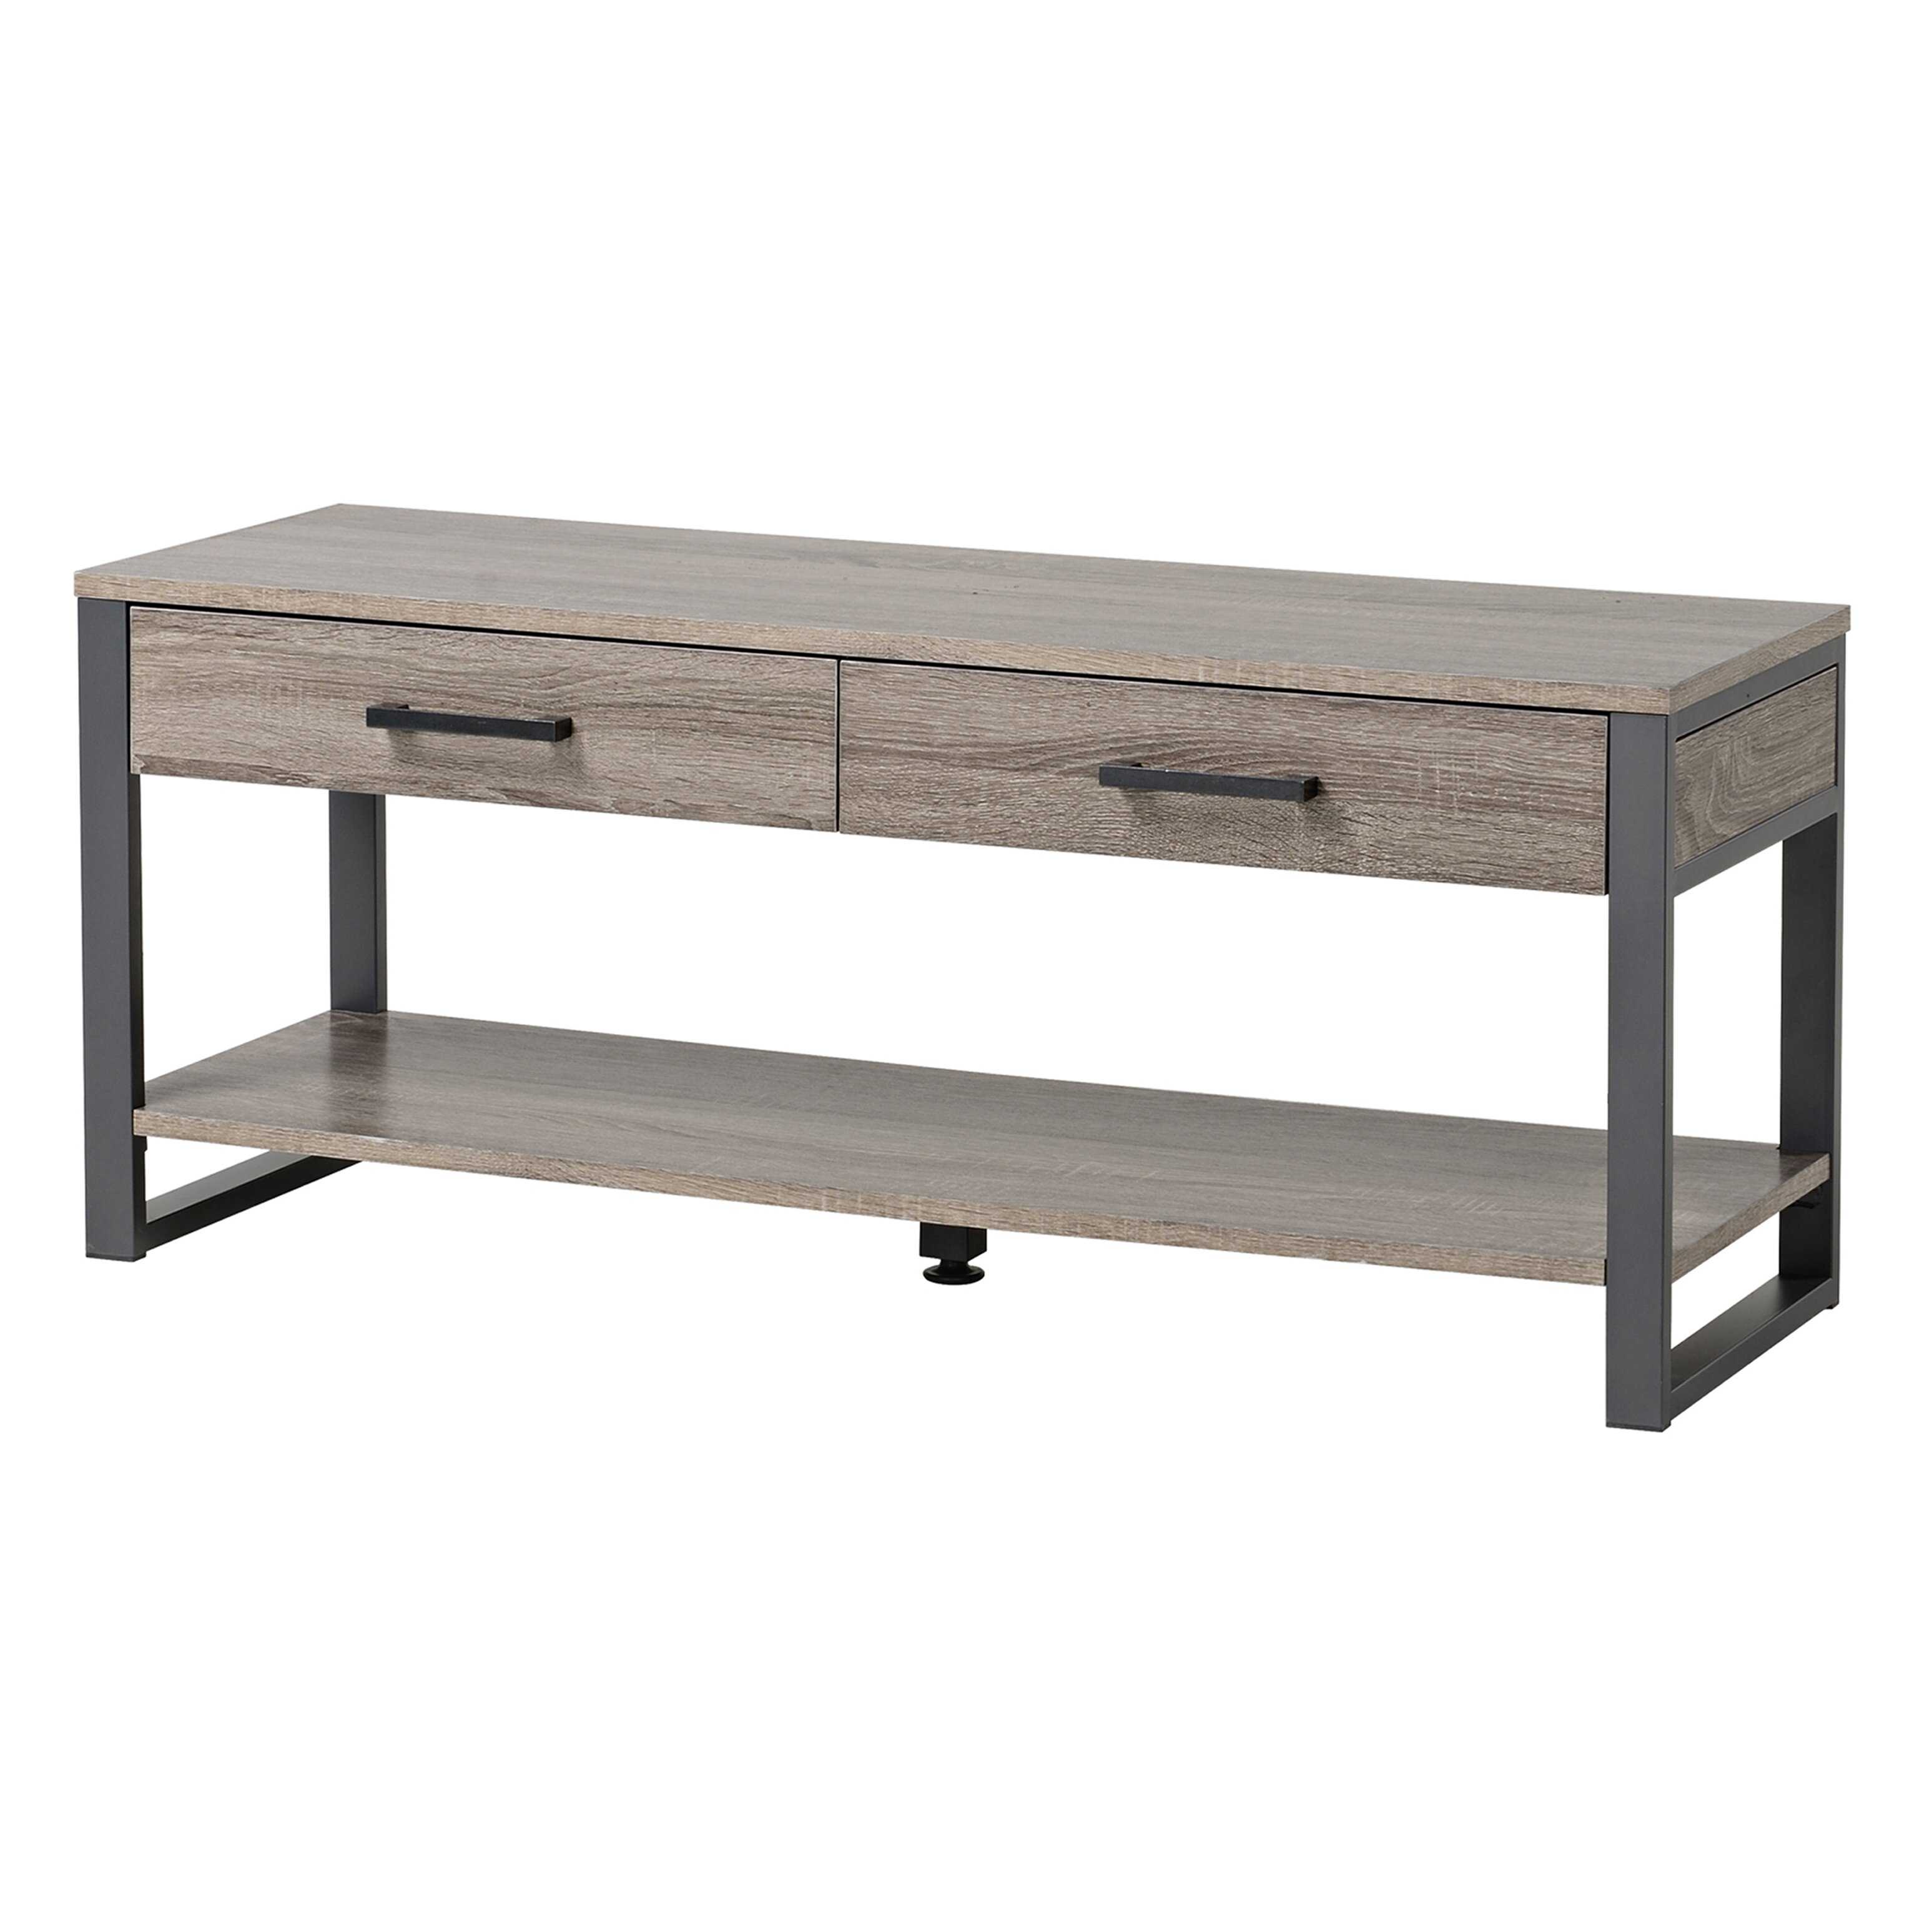 Homestar Wood Storage Entryway Bench Reviews Wayfair